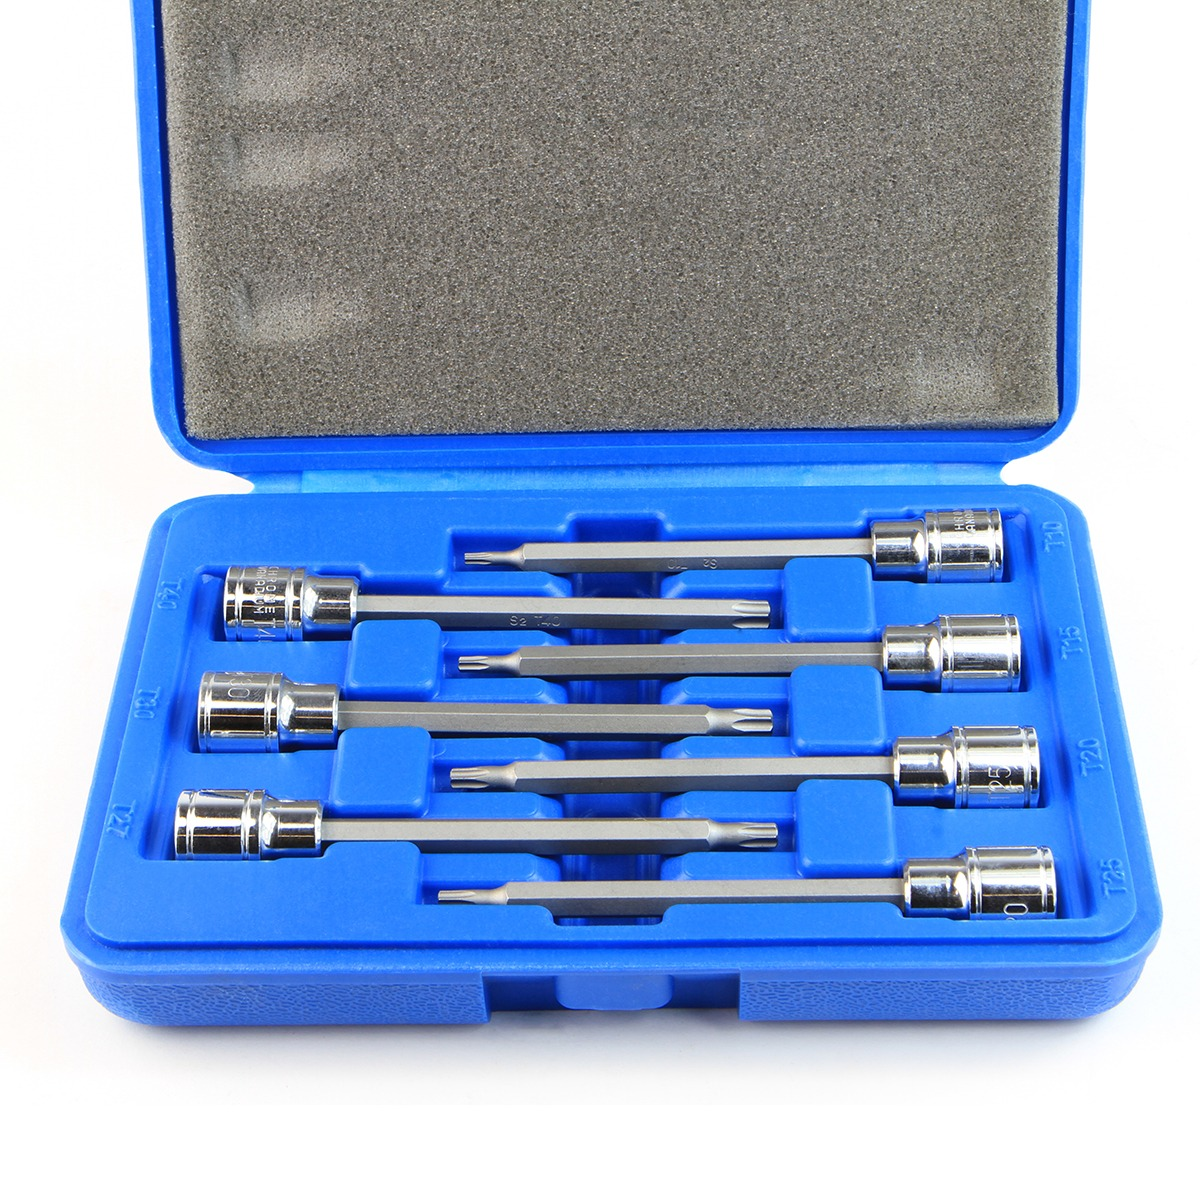 "3/8"" Drive Long Tamper Proof Torx Star Bit Sockets Tool Set with Case, 7PC"